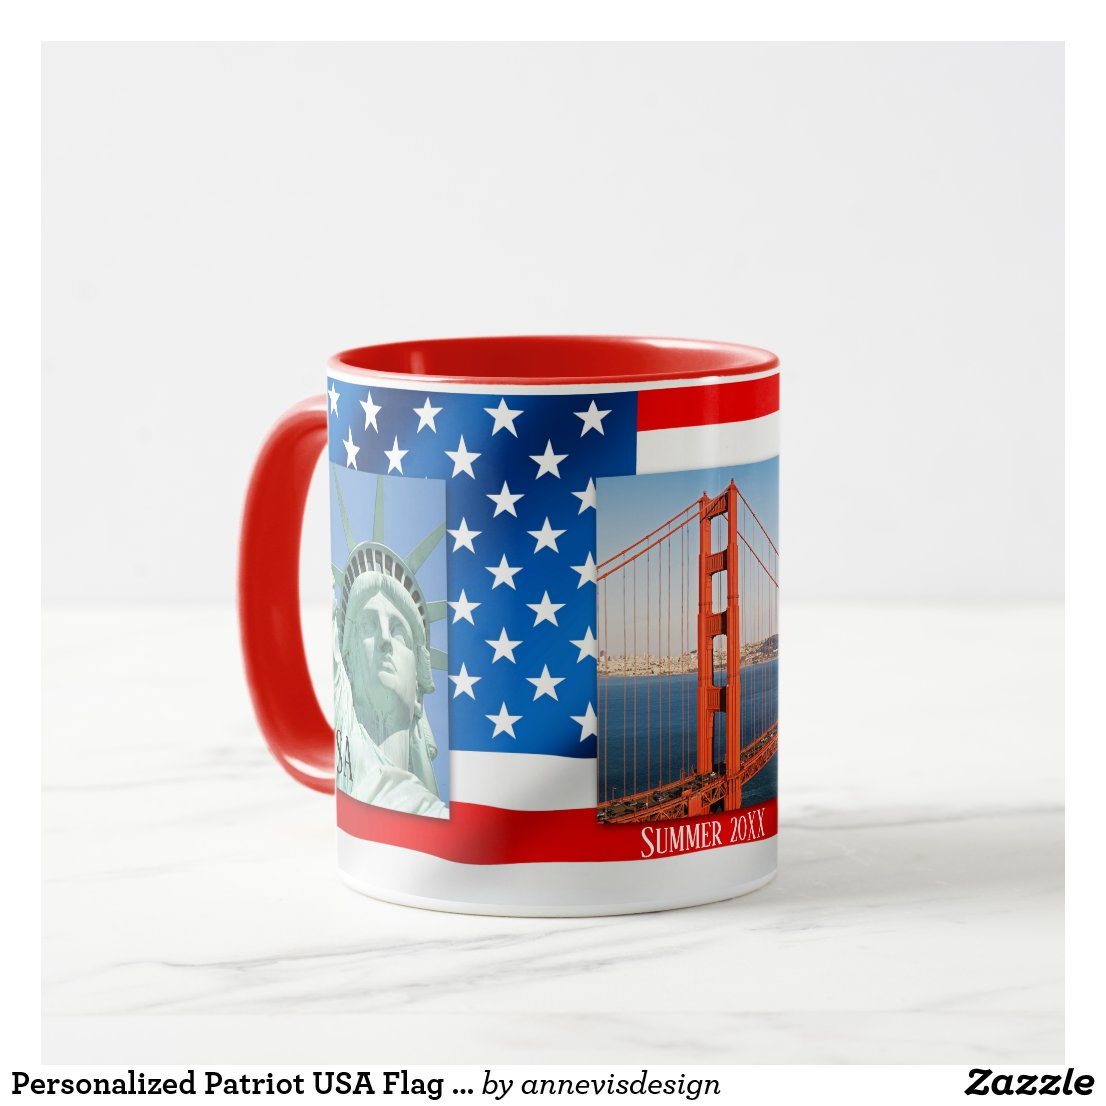 Personalized Patriot USA Flag Photo Mug